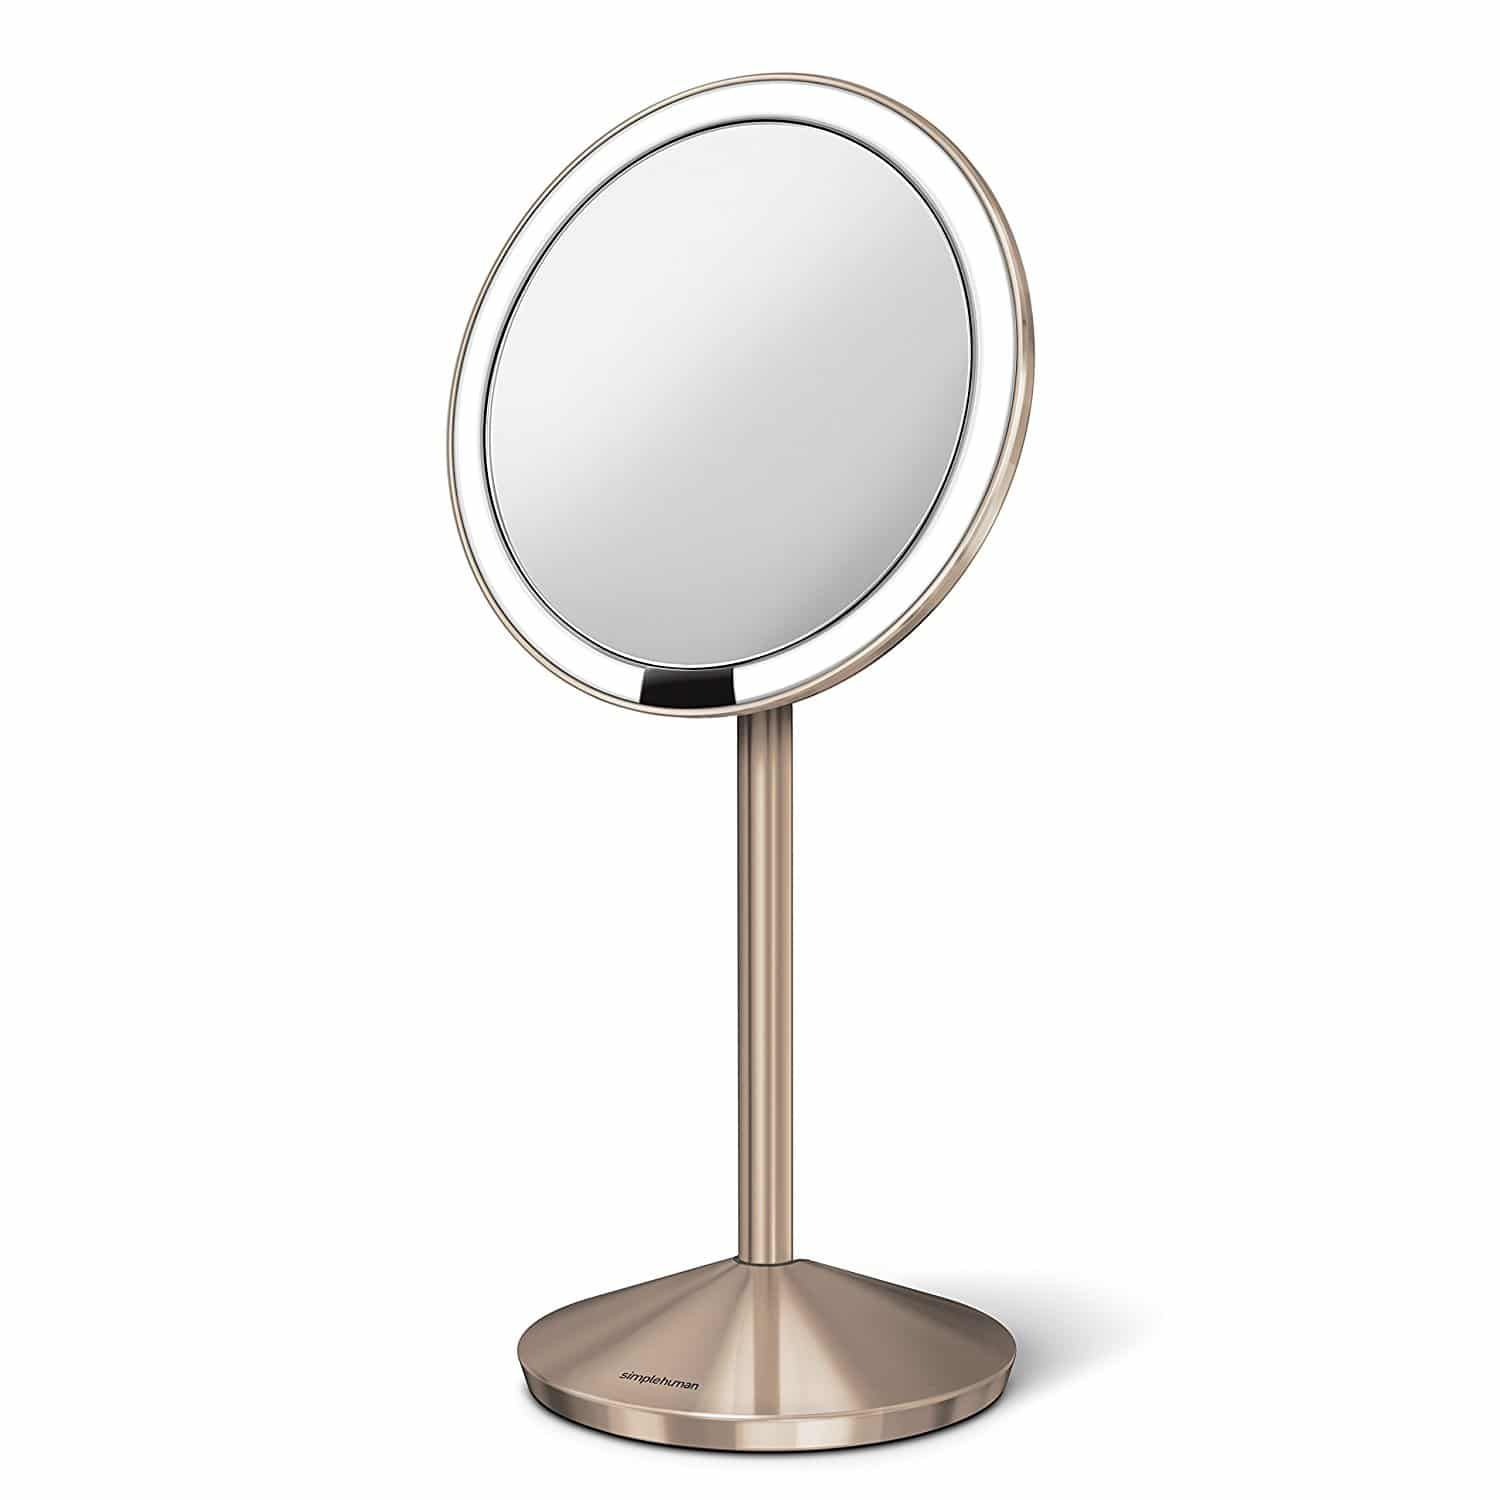 Top 10 Best Lighted Makeup Mirrors In 2020 Most Review With Images Makeup Mirror With Lights Makeup Mirrors Light Makeup